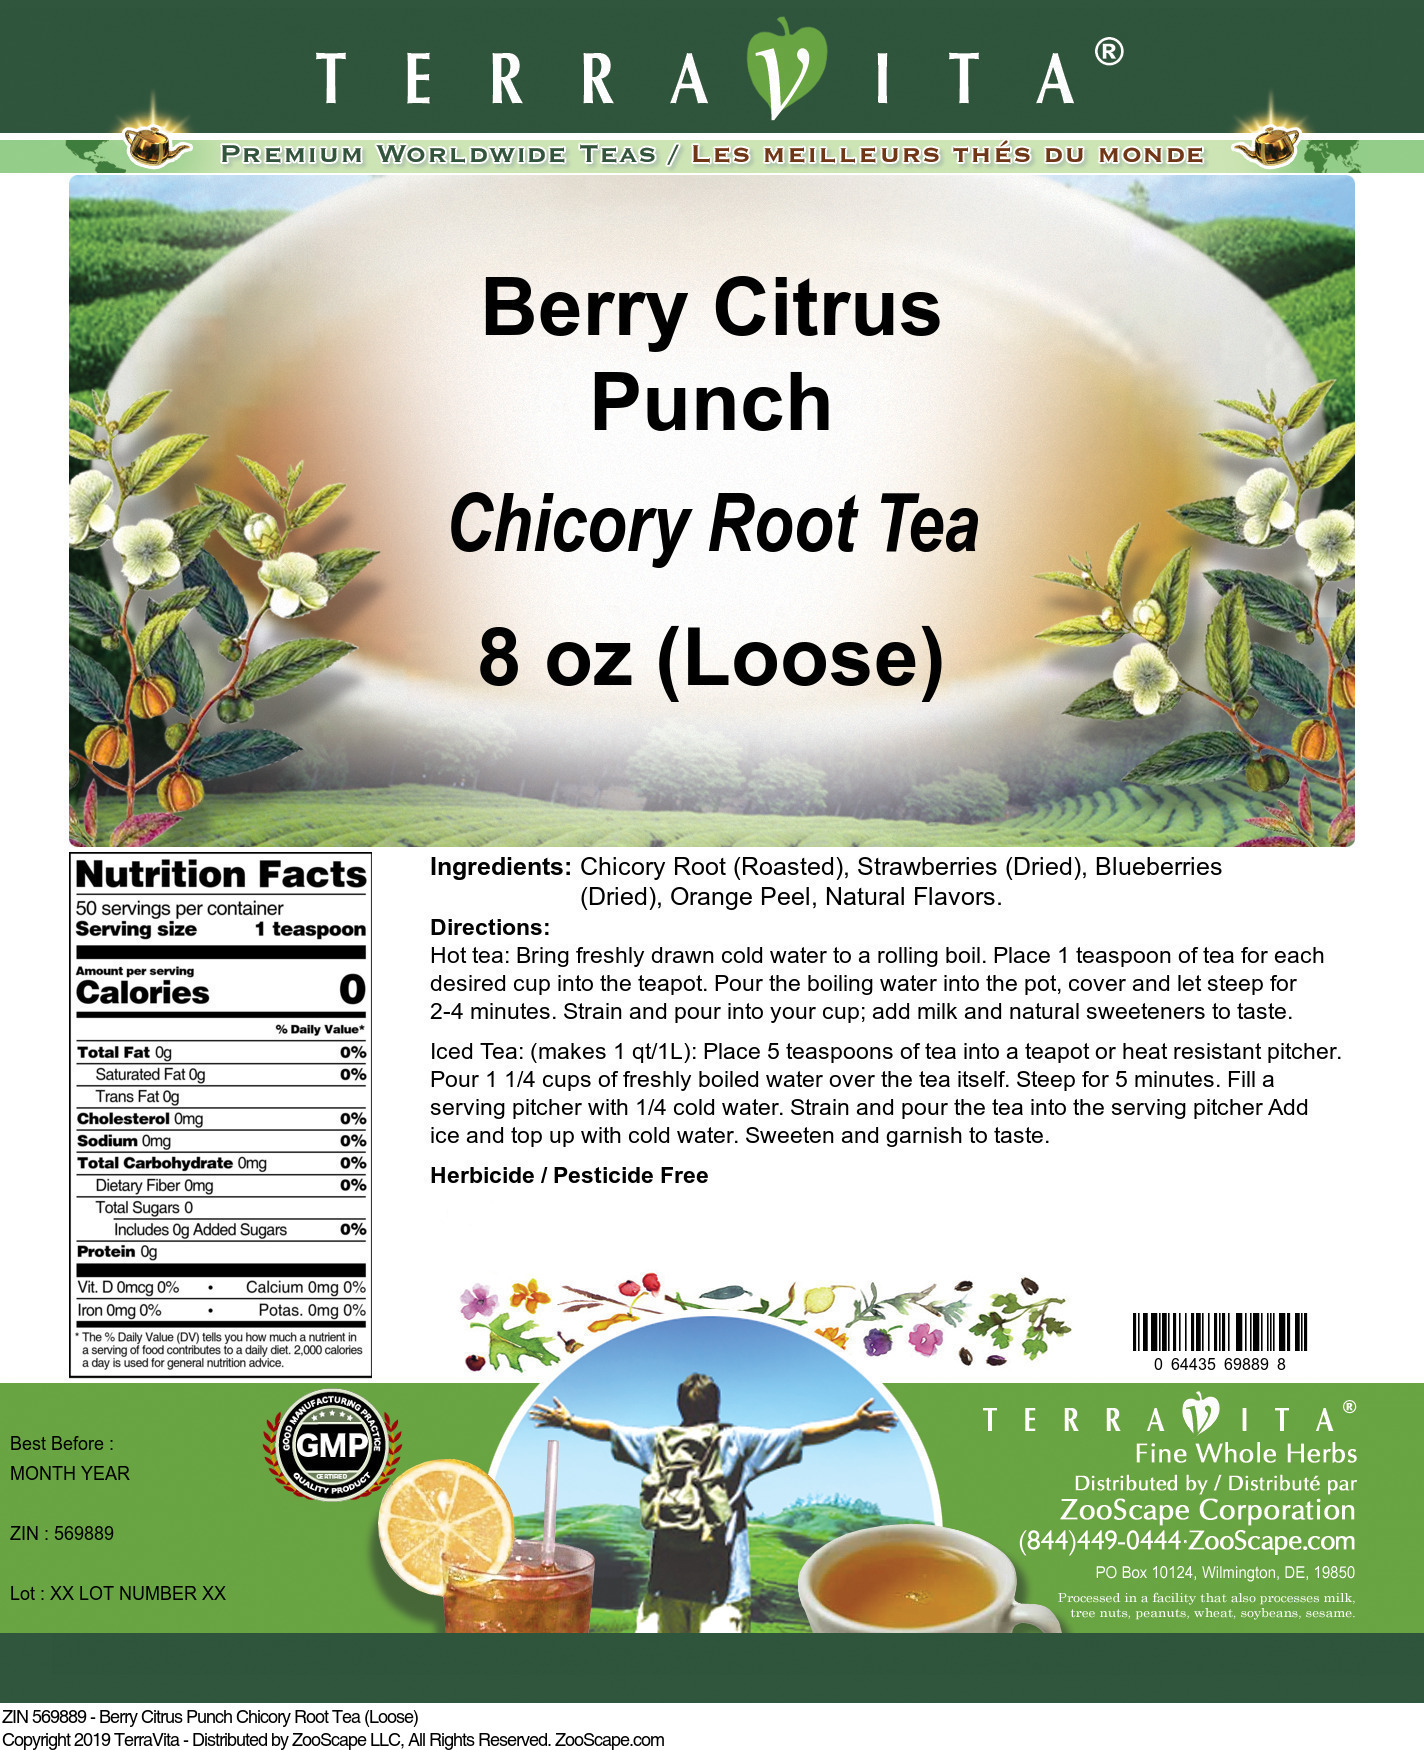 Berry Citrus Punch Chicory Root